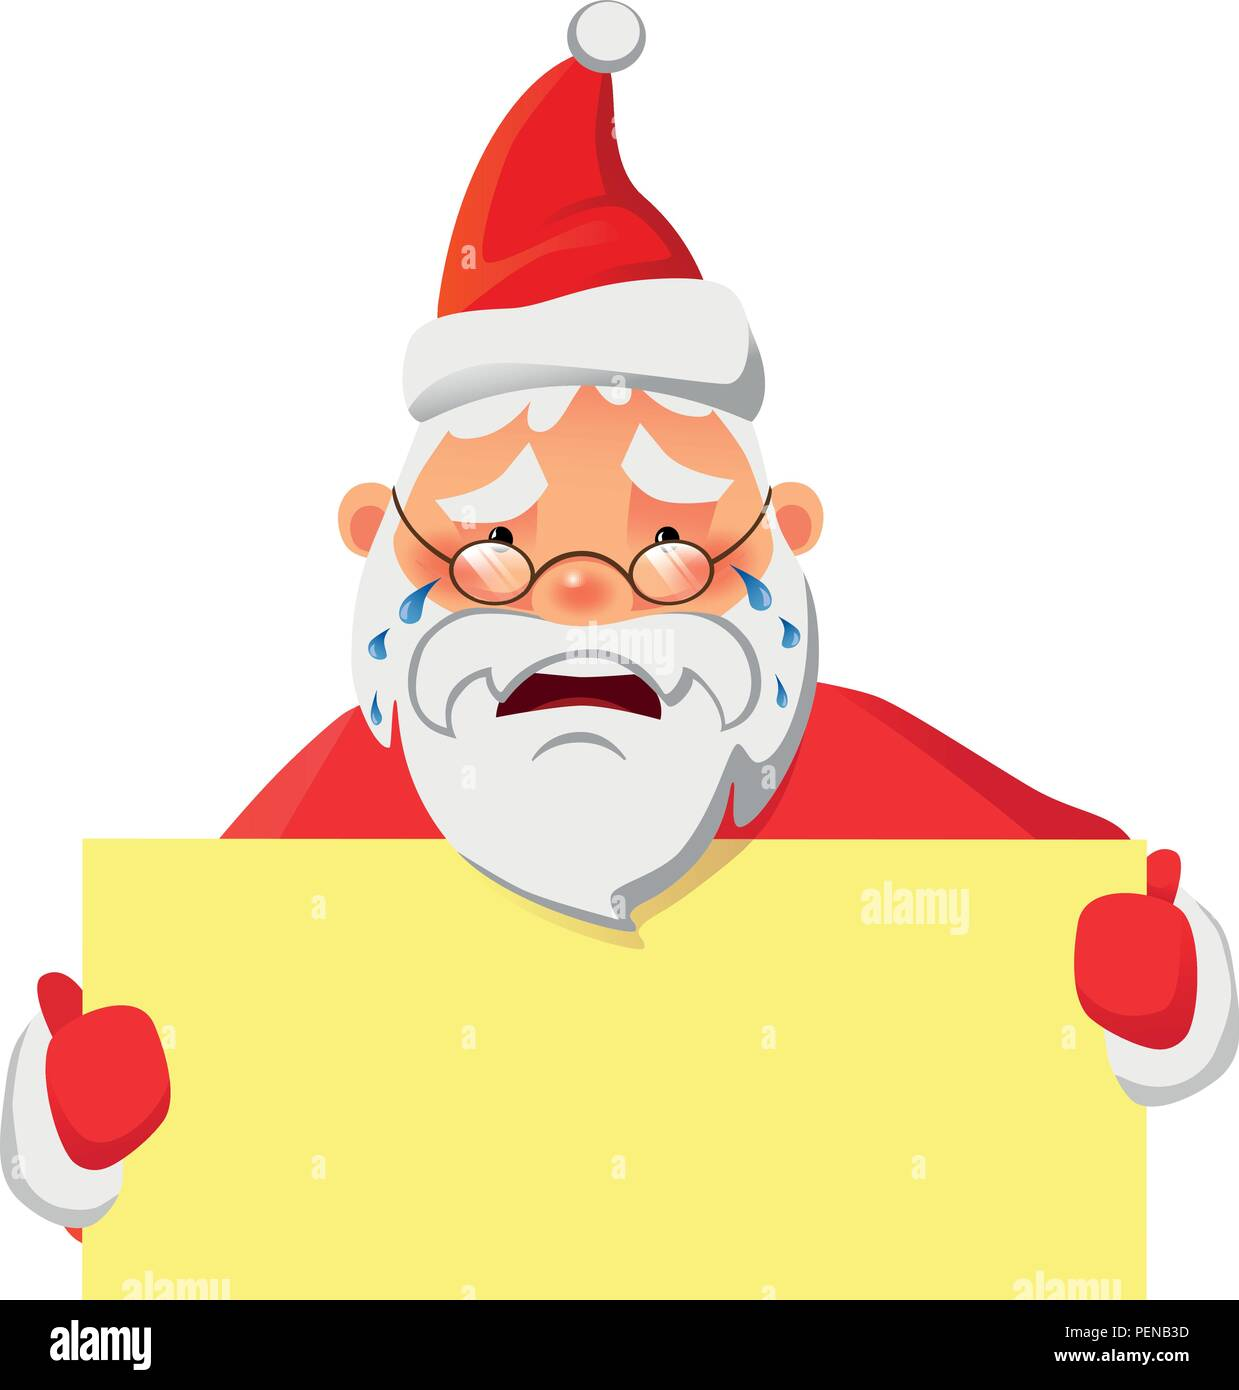 Santa Claus holding banner with space for your text. Santa Claus vector illustration - Stock Vector